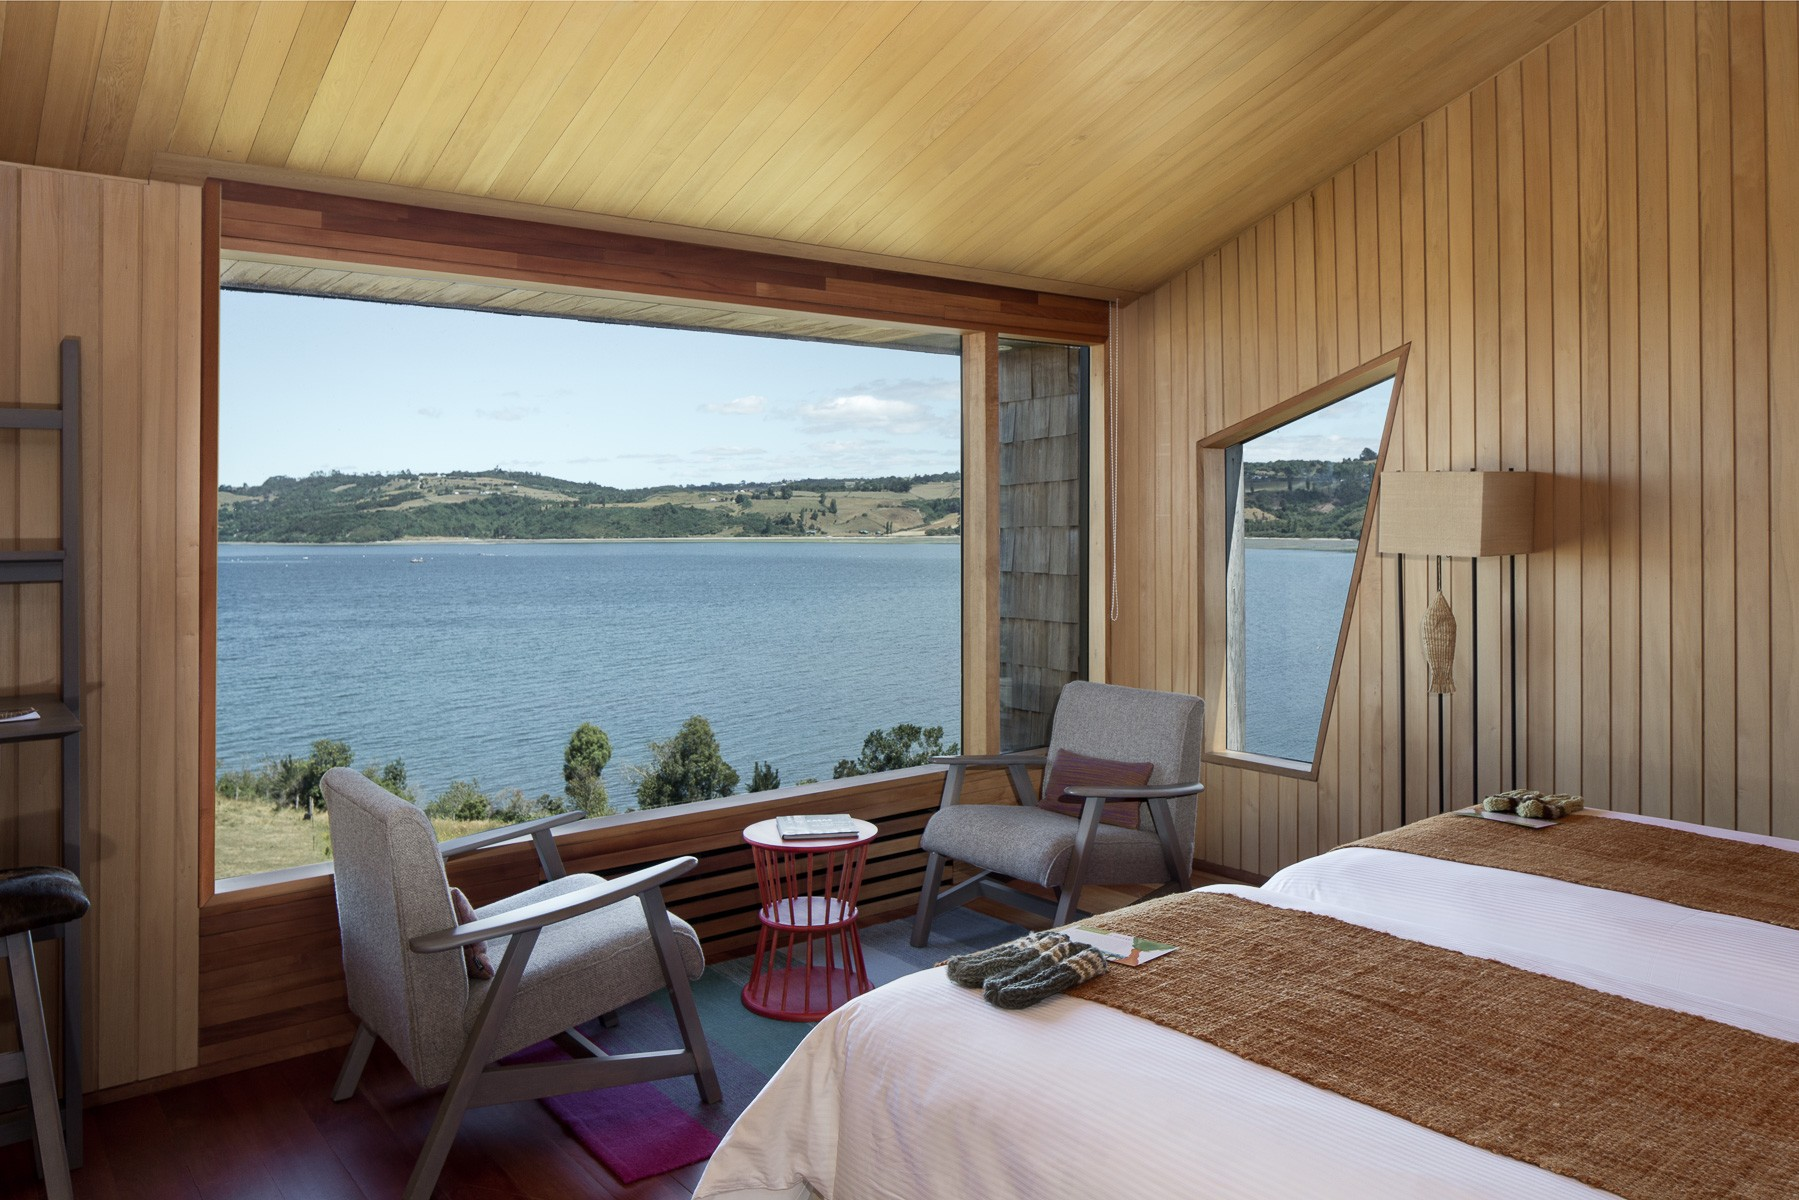 Hotel Tierra Chiloe Room Day